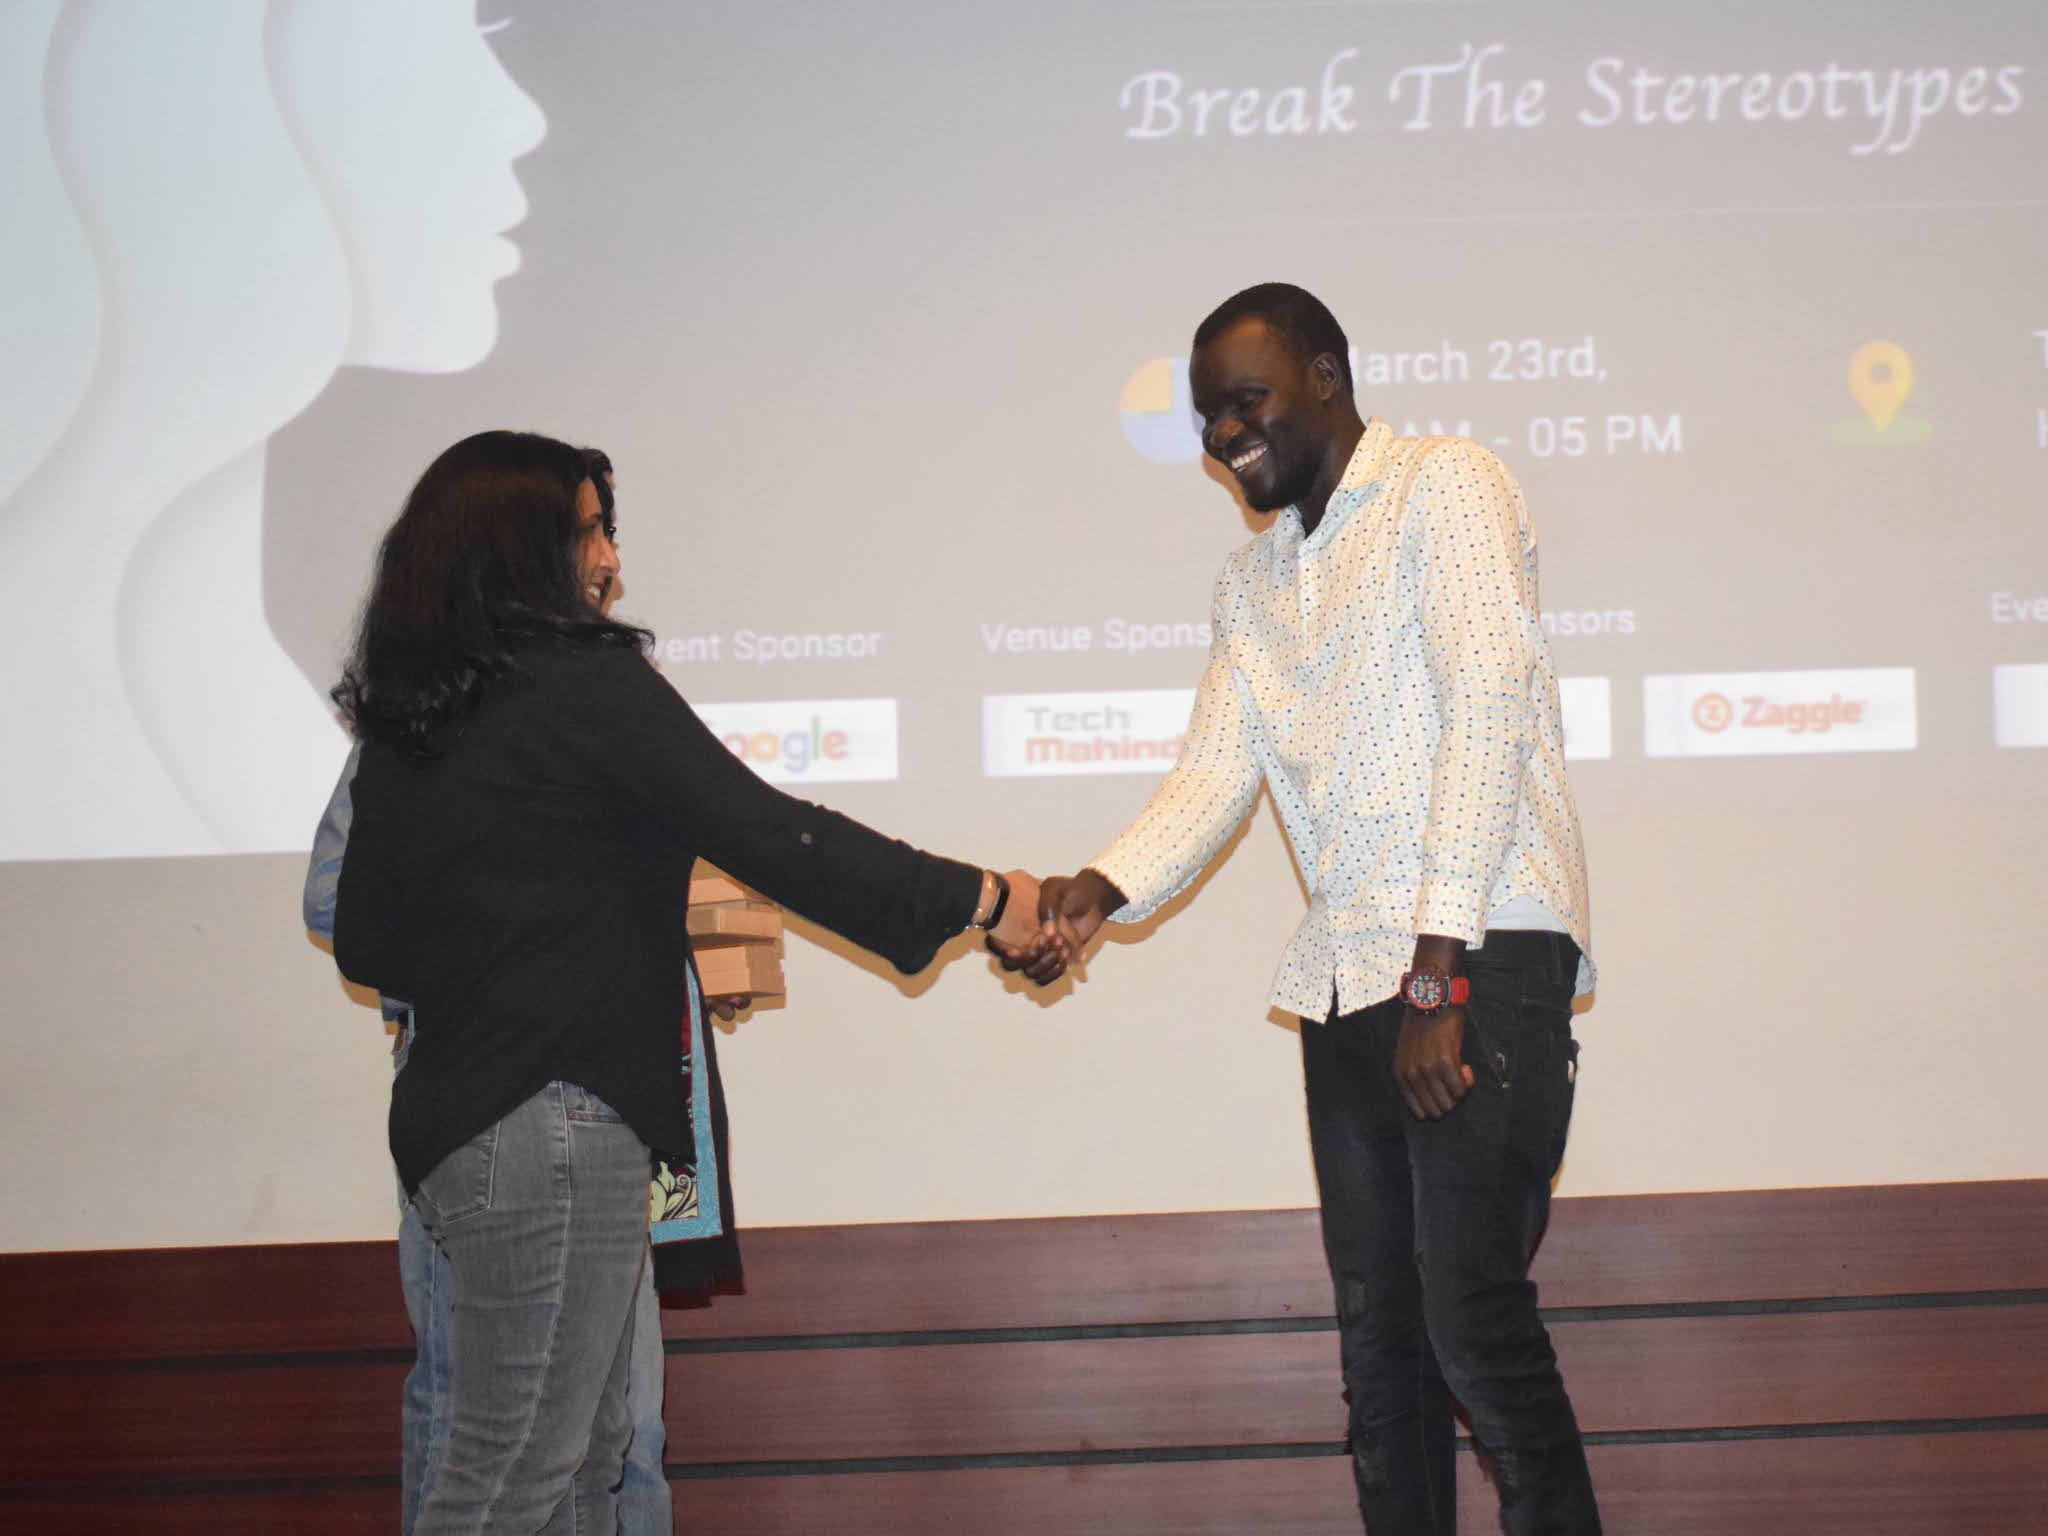 Kose shakes hand with woman at stage